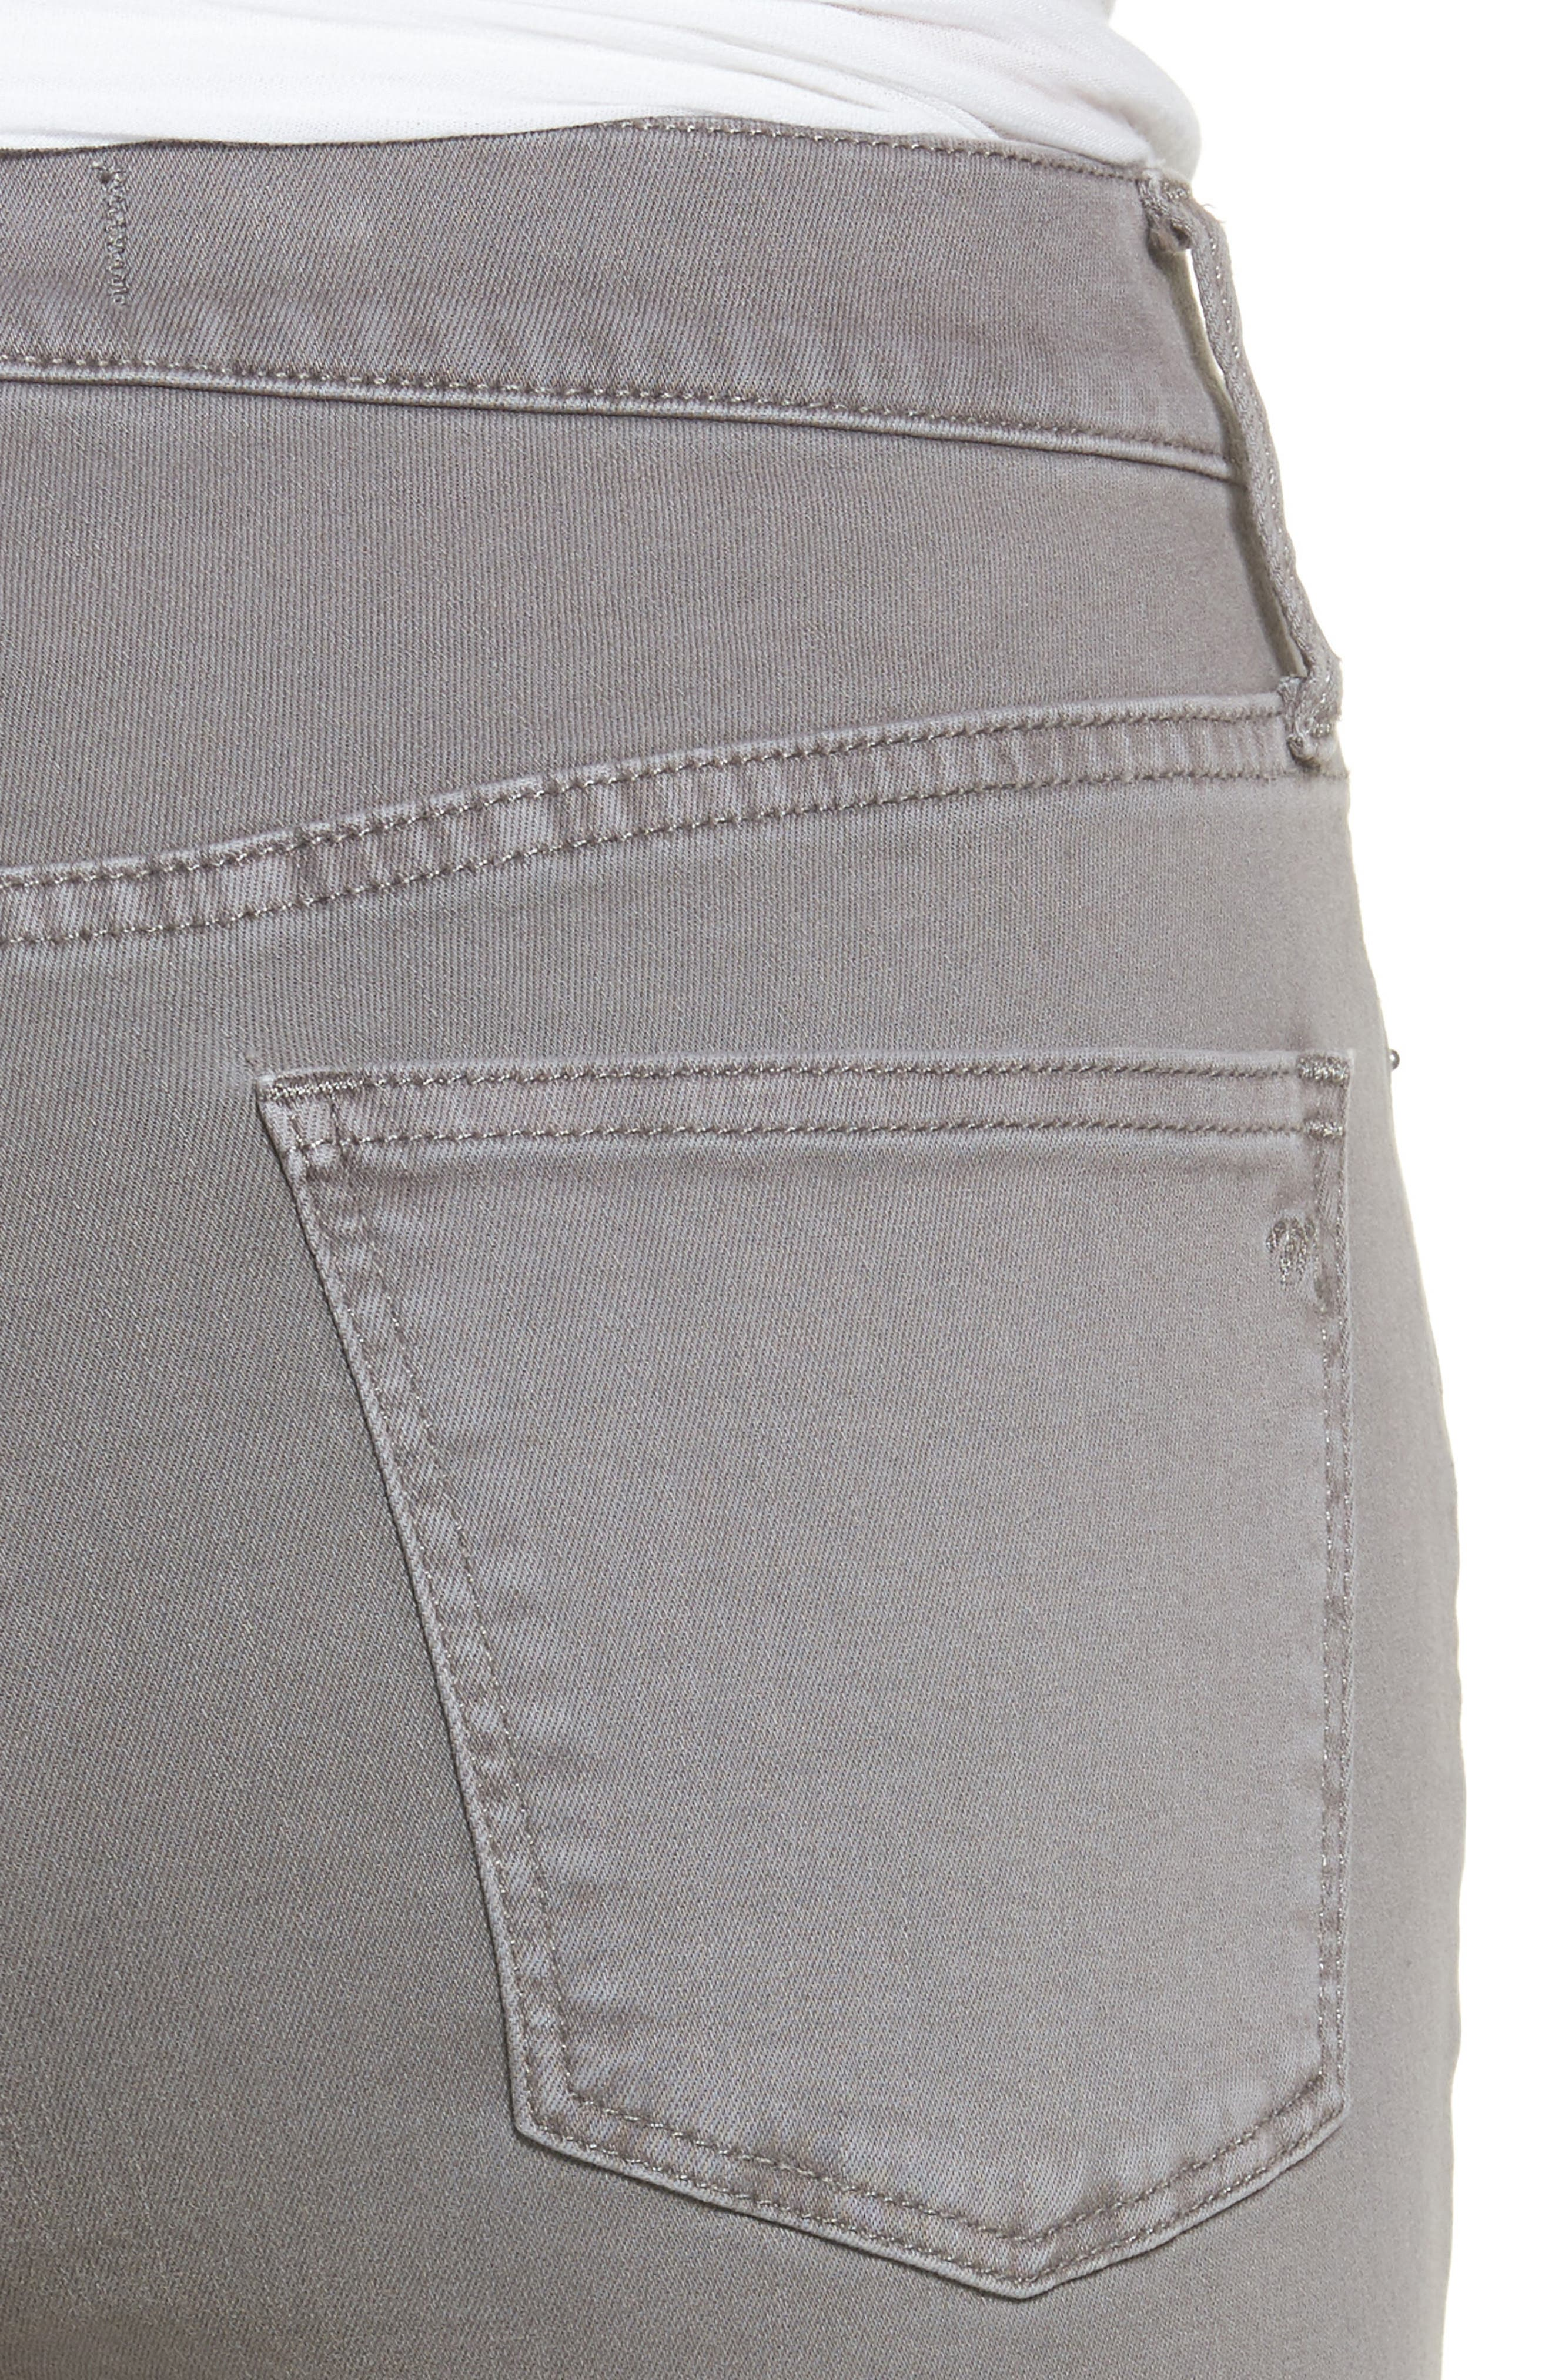 9-Inch High-Rise Skinny Jeans: Raw-Hem Garment-Dyed Edition,                             Alternate thumbnail 7, color,